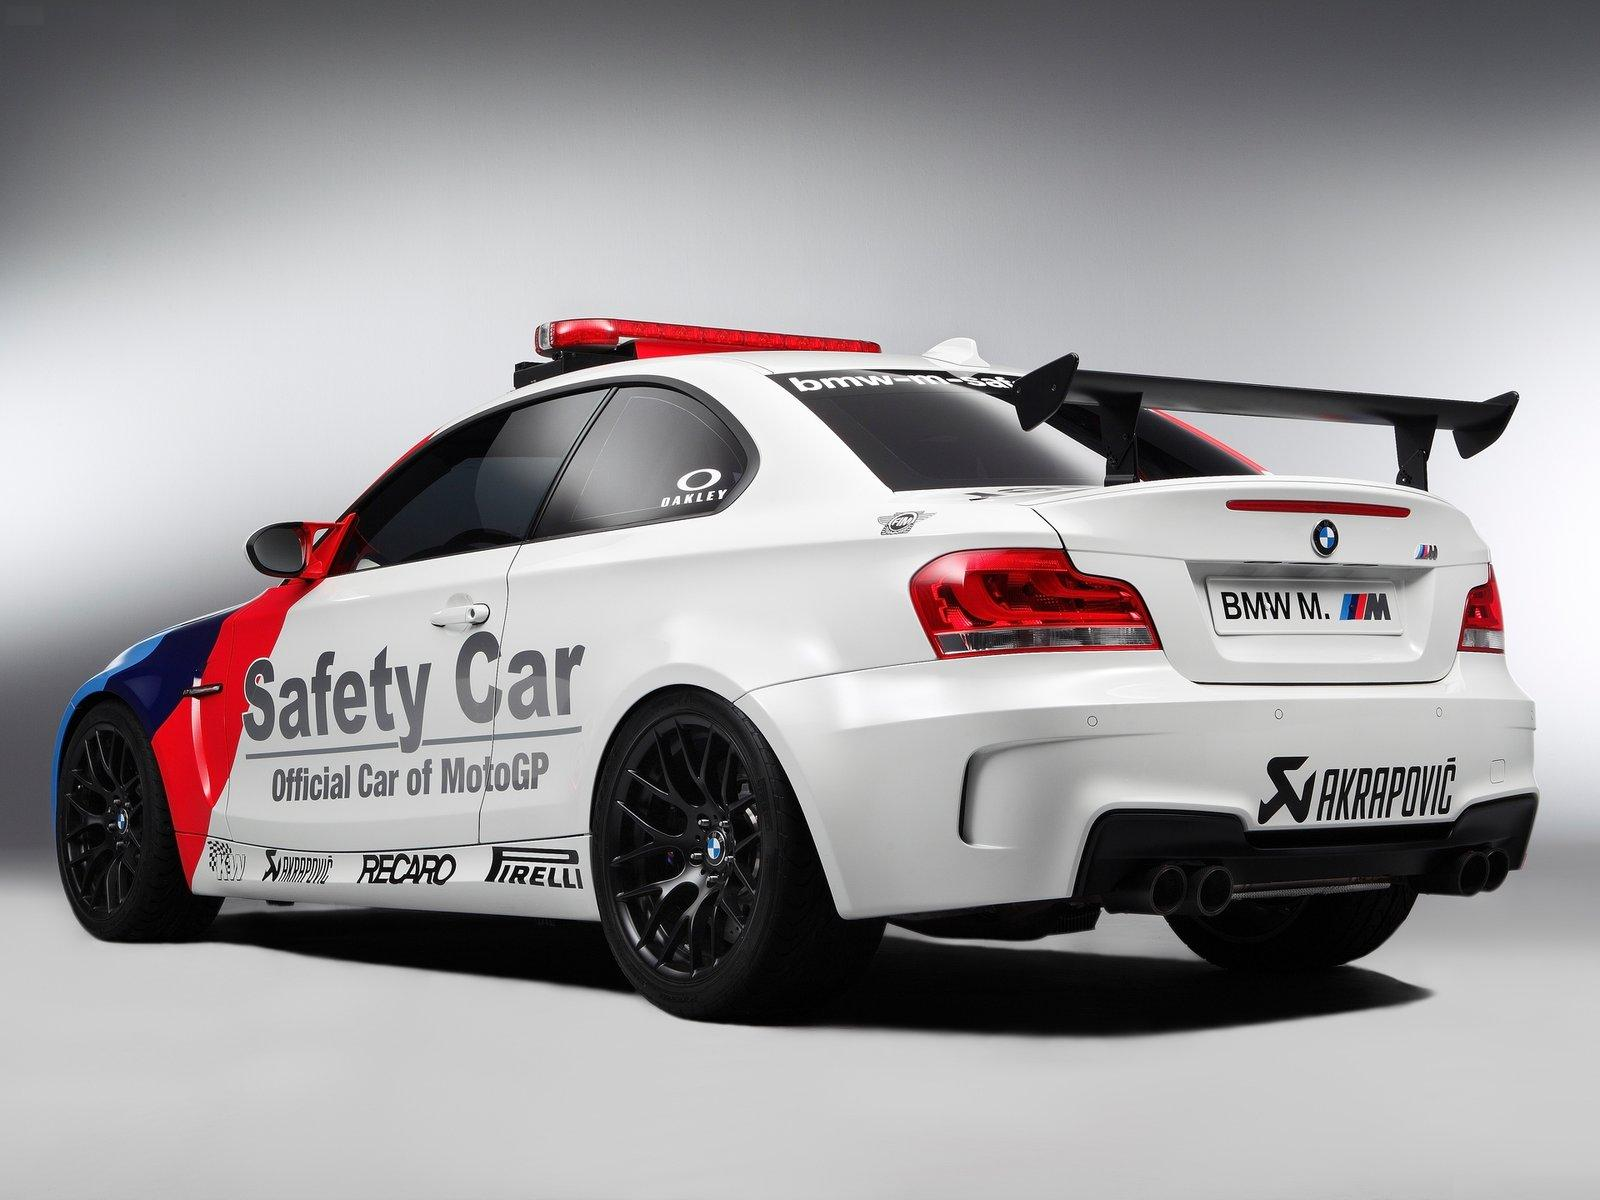 BMW 1 SERIES M COUPE MOTOGP SAFETY CAR  7